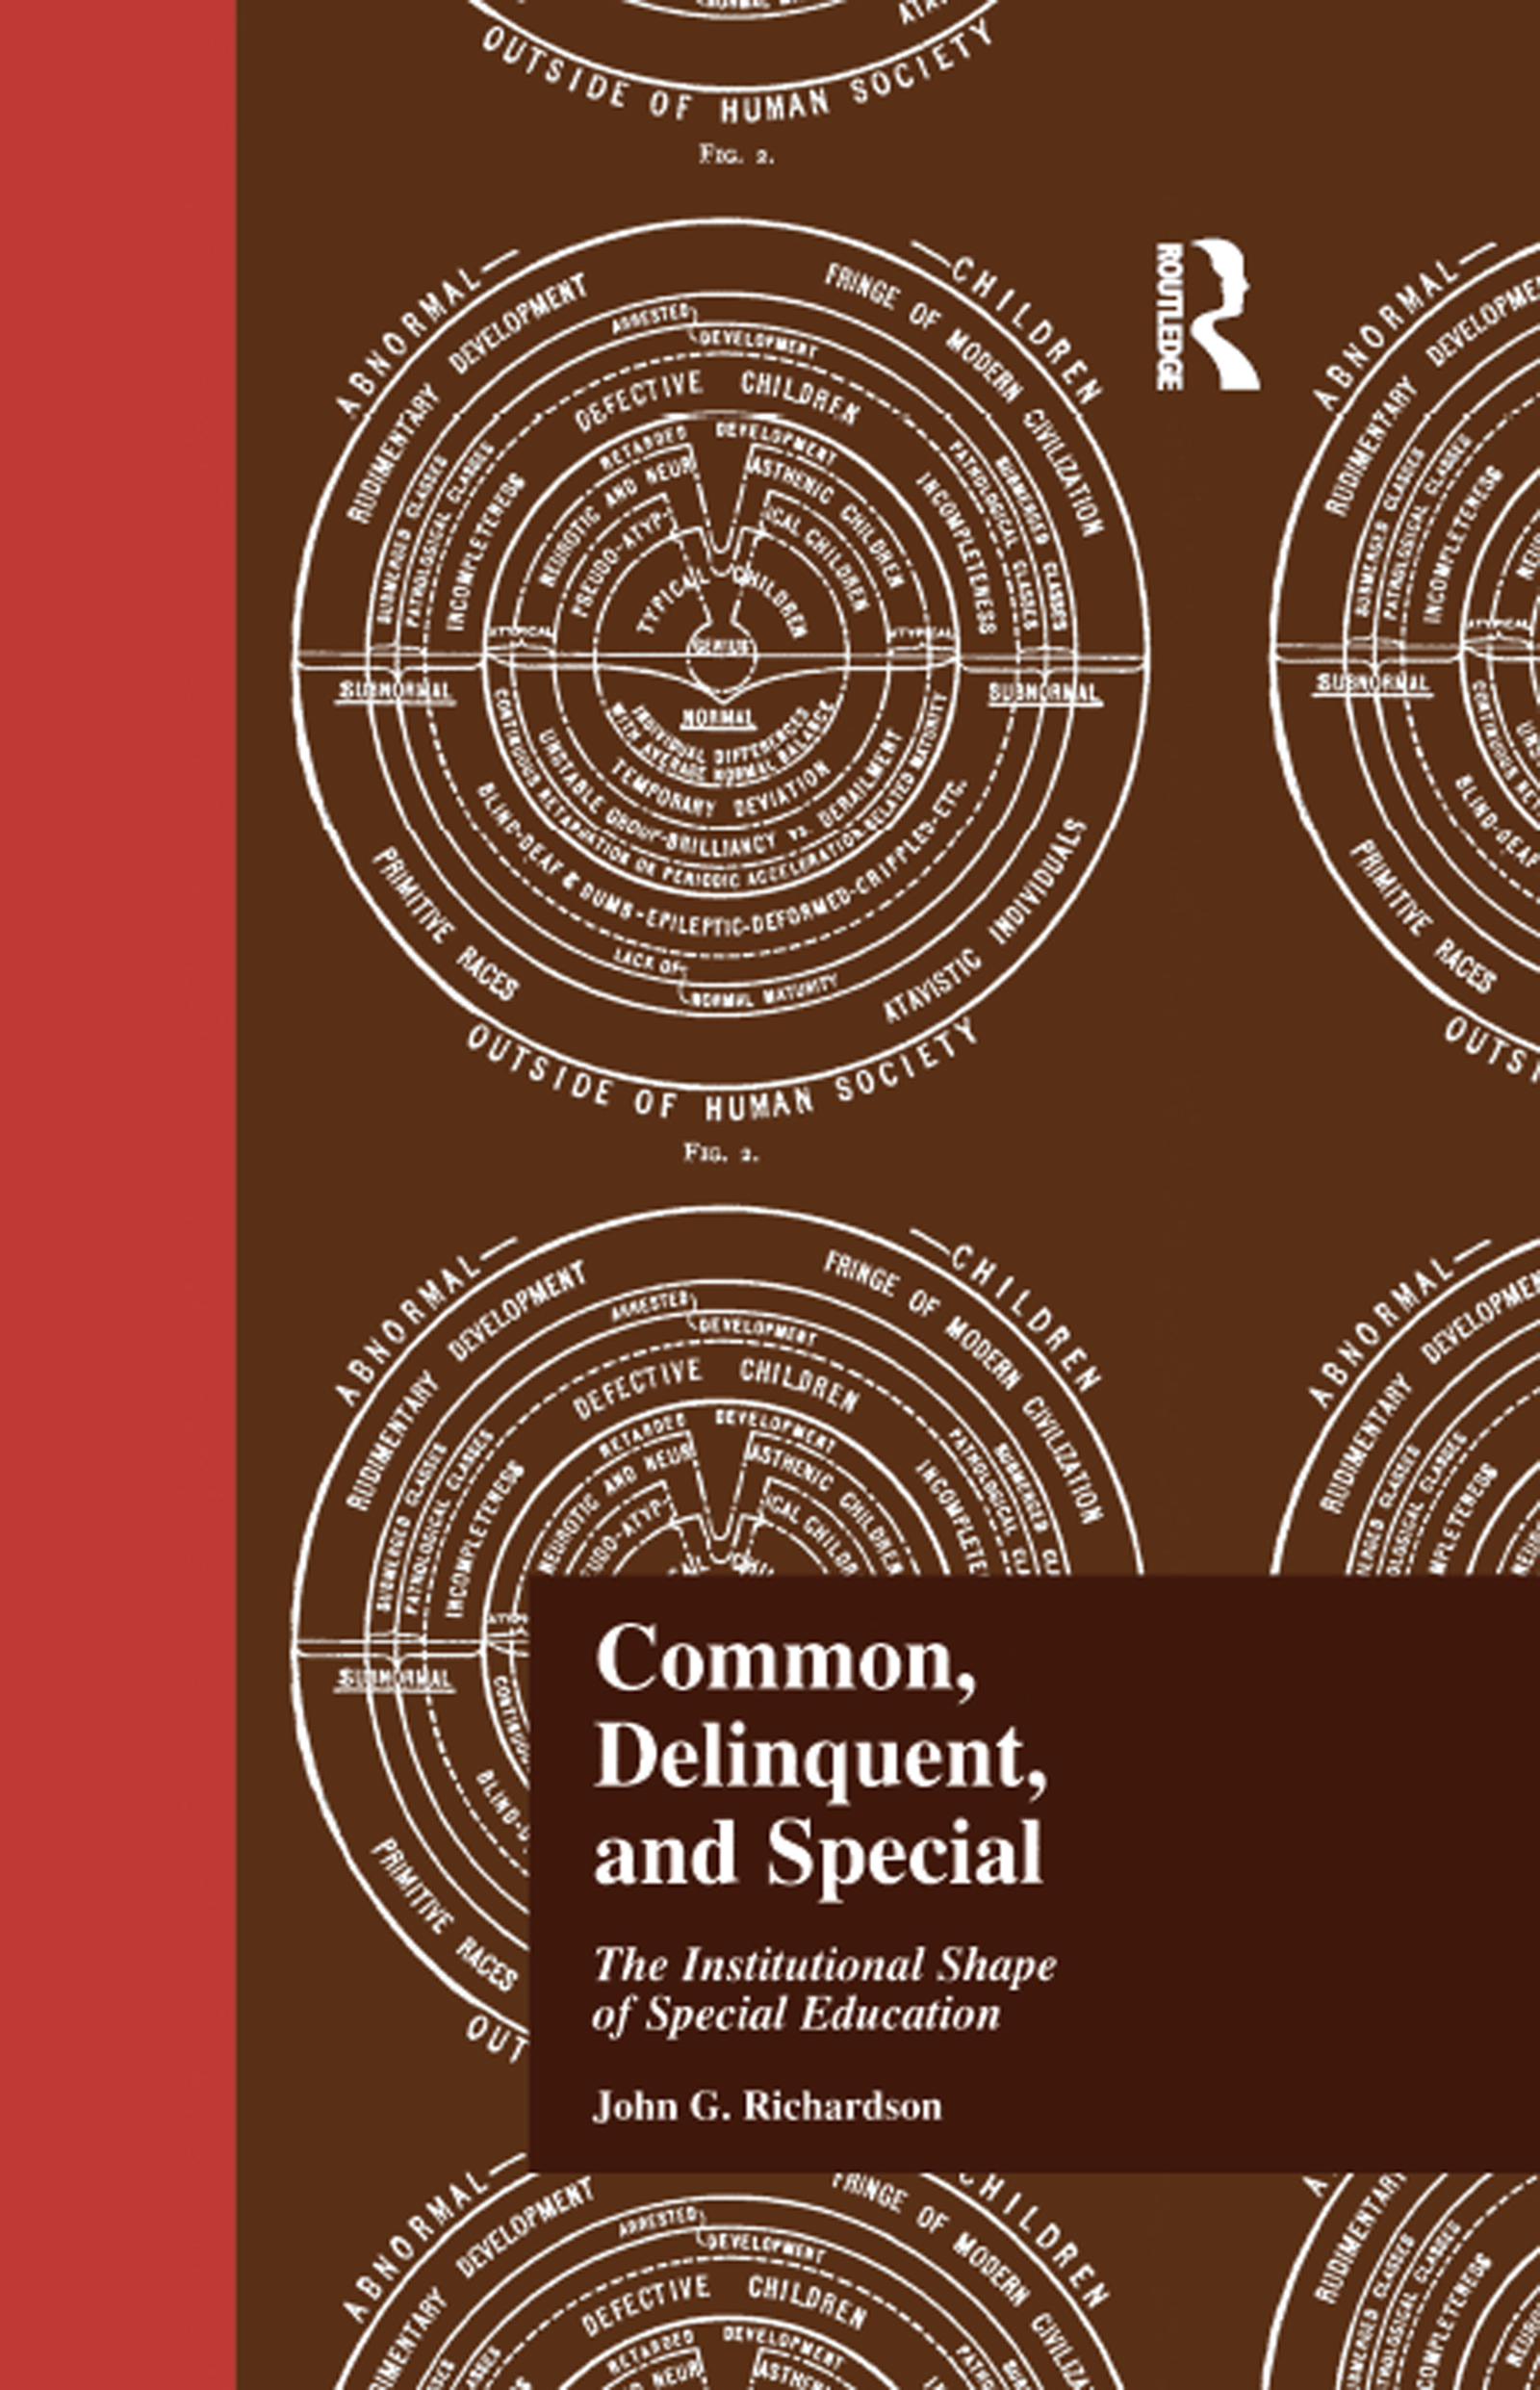 Common, Delinquent, and Special: The Institutional Shape of Special Education book cover